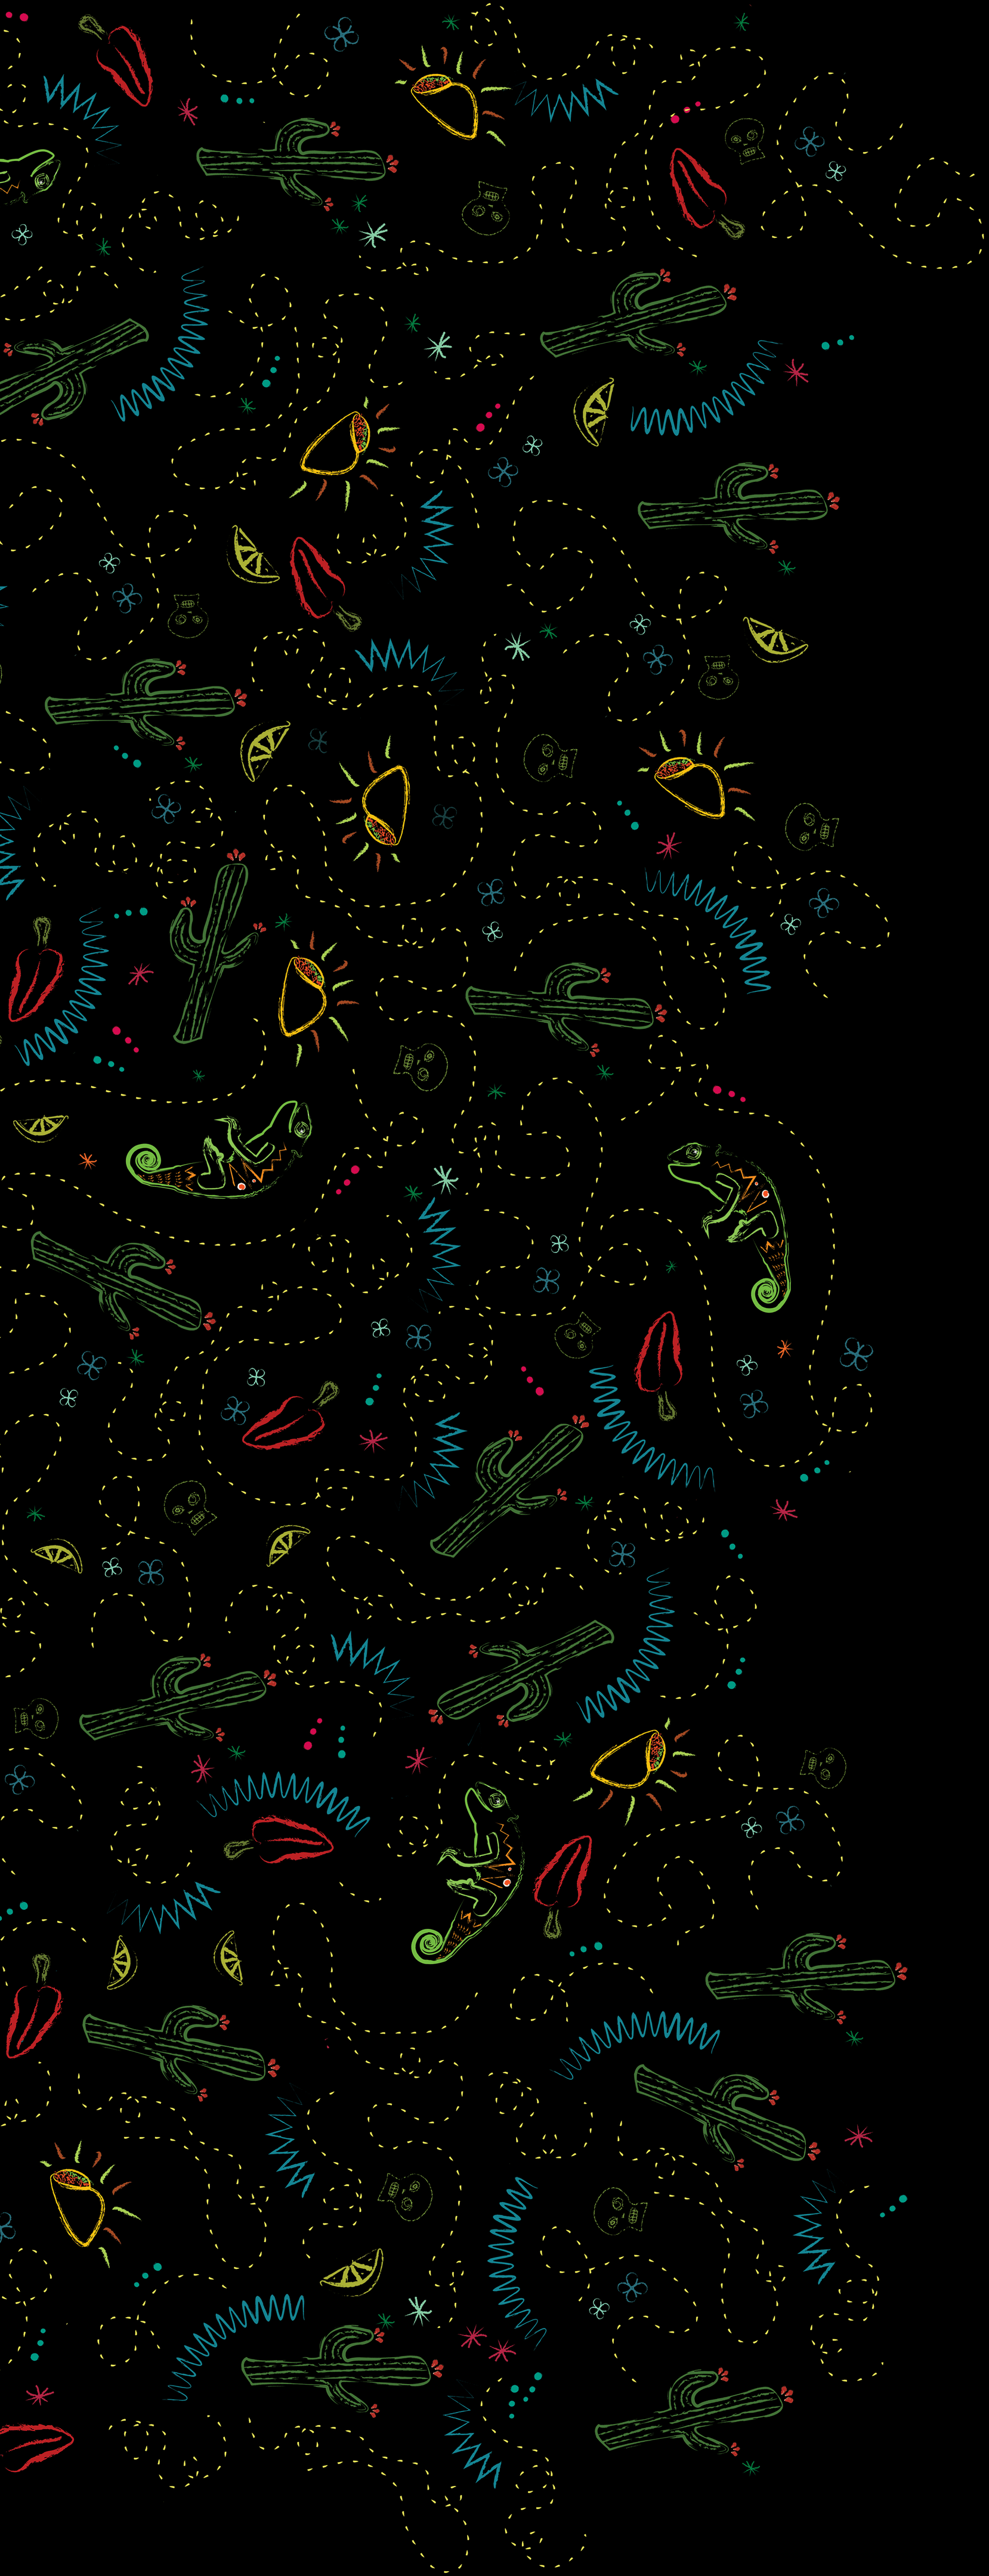 Background Illustration full of tacos, peppers, limes, cacti, and iguanas